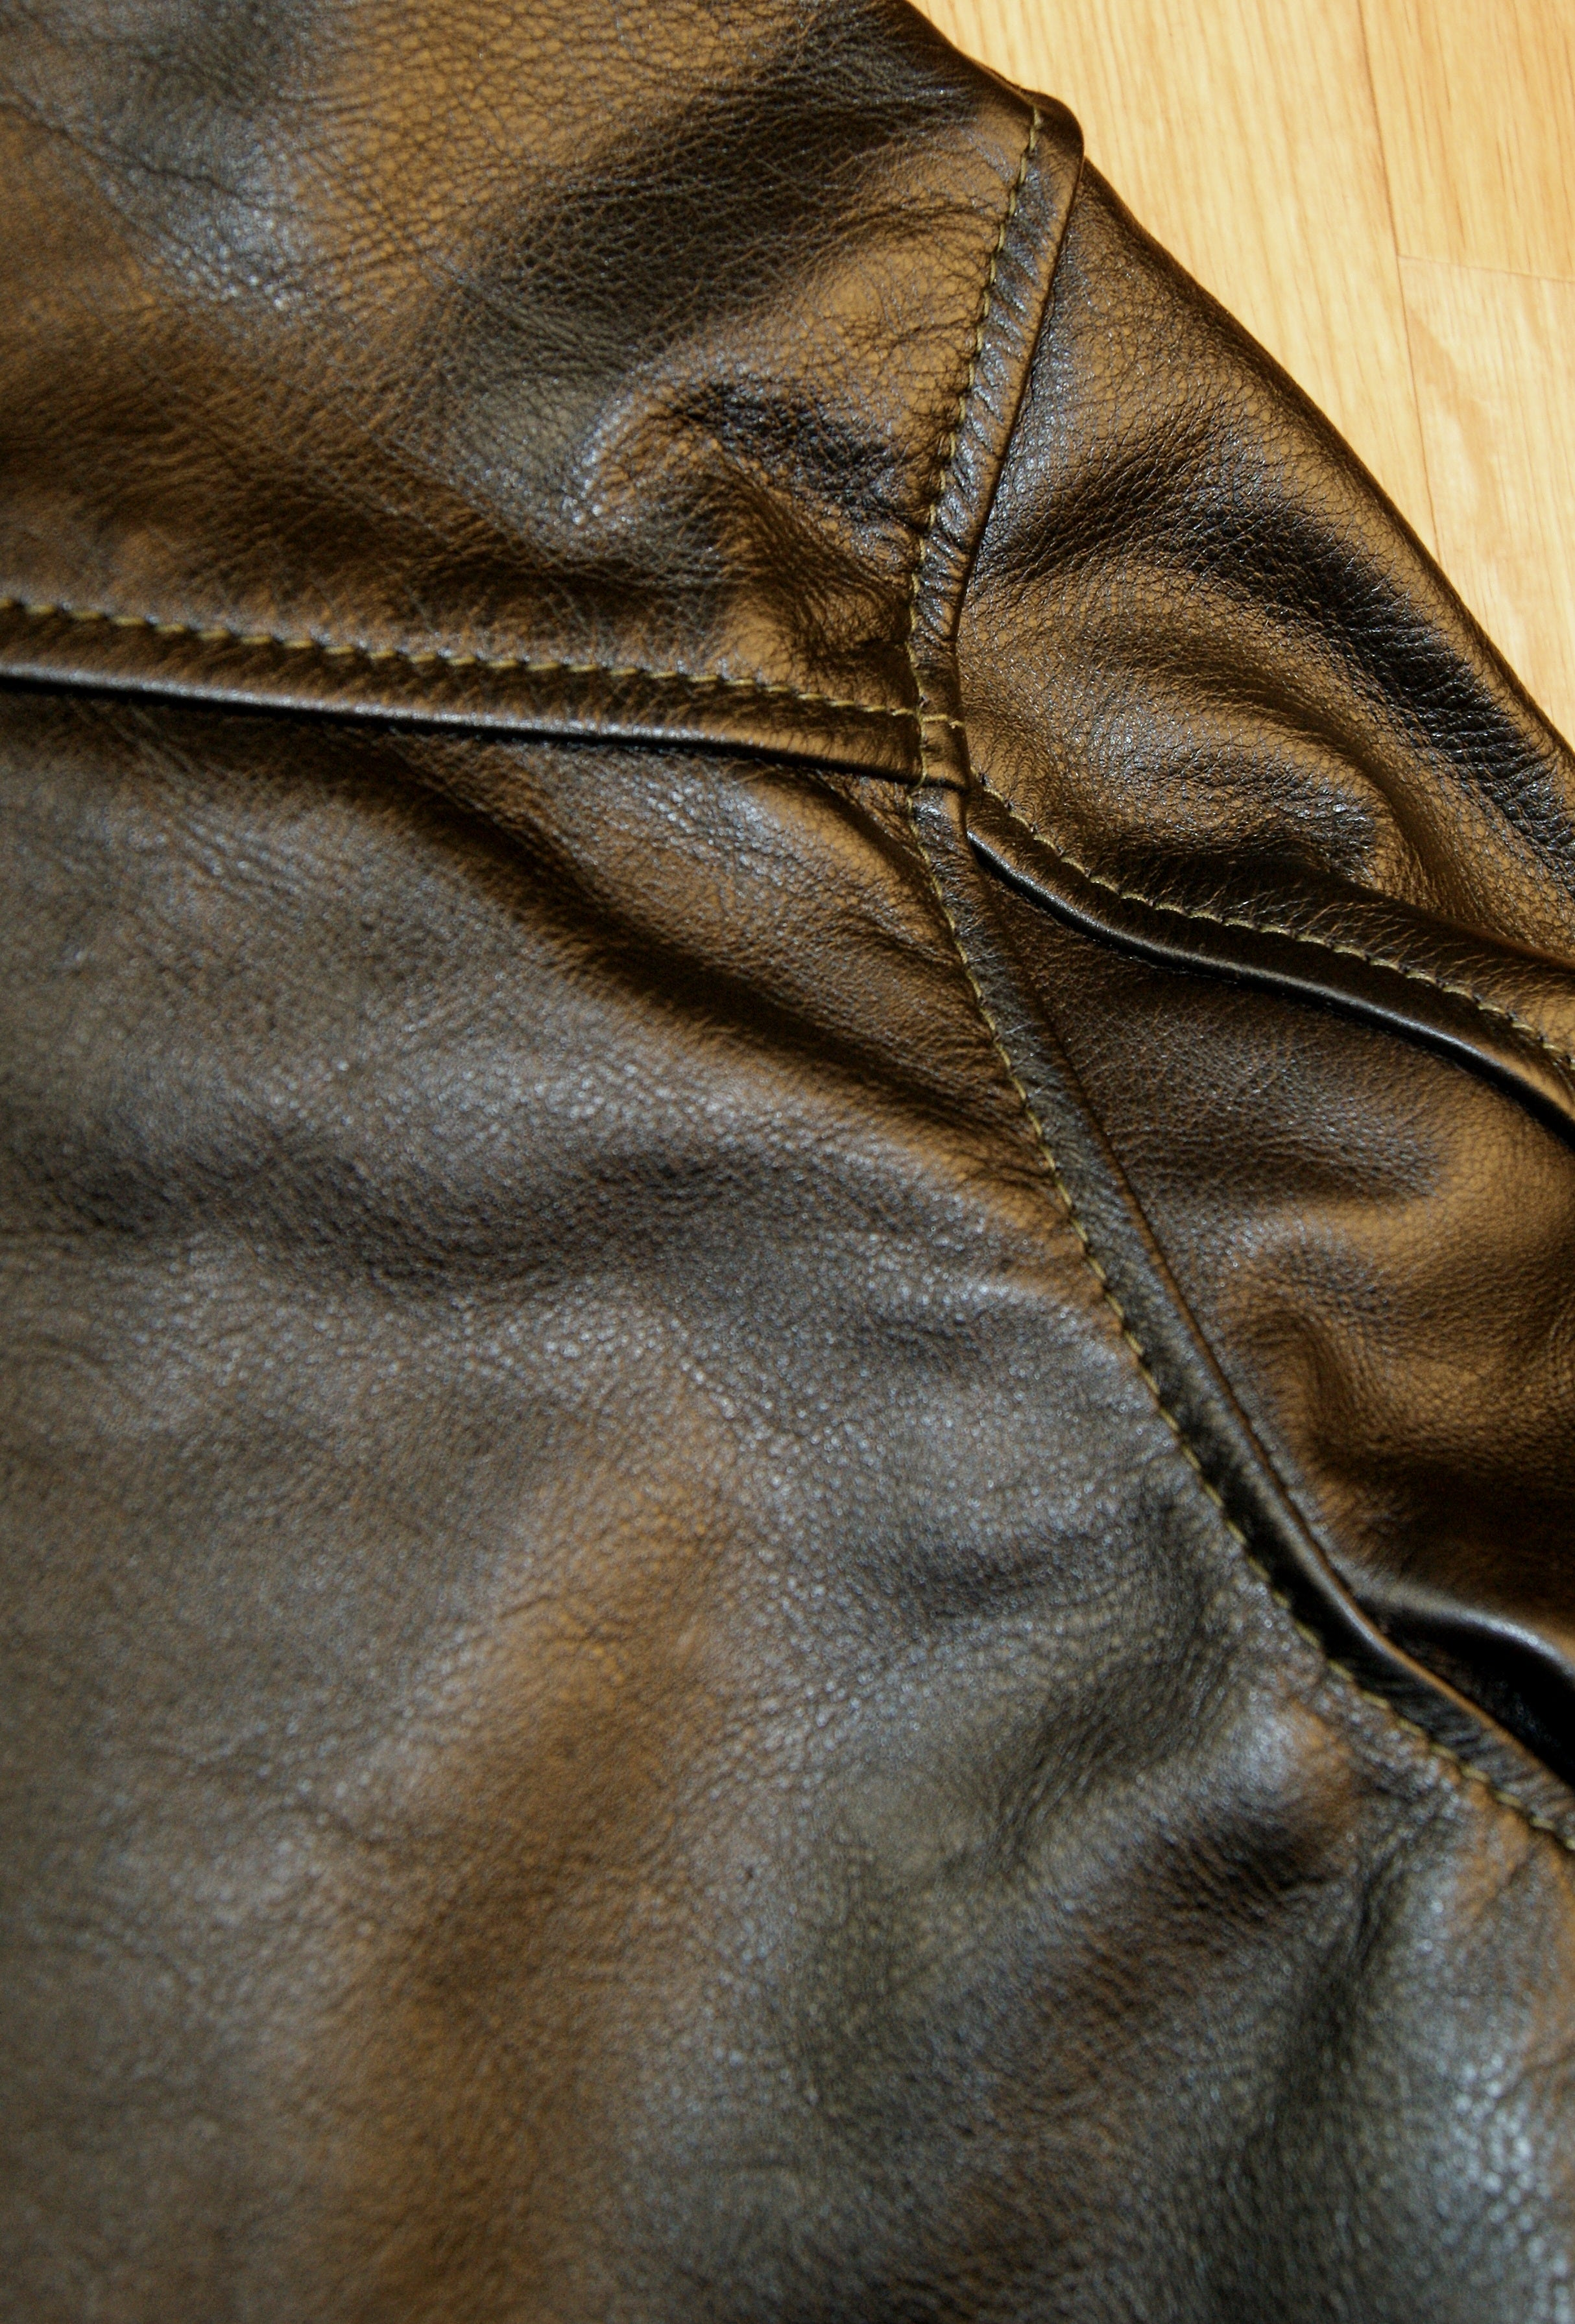 Aero Board Racer, size 42, Blackened Brown Vicenza Horsehide